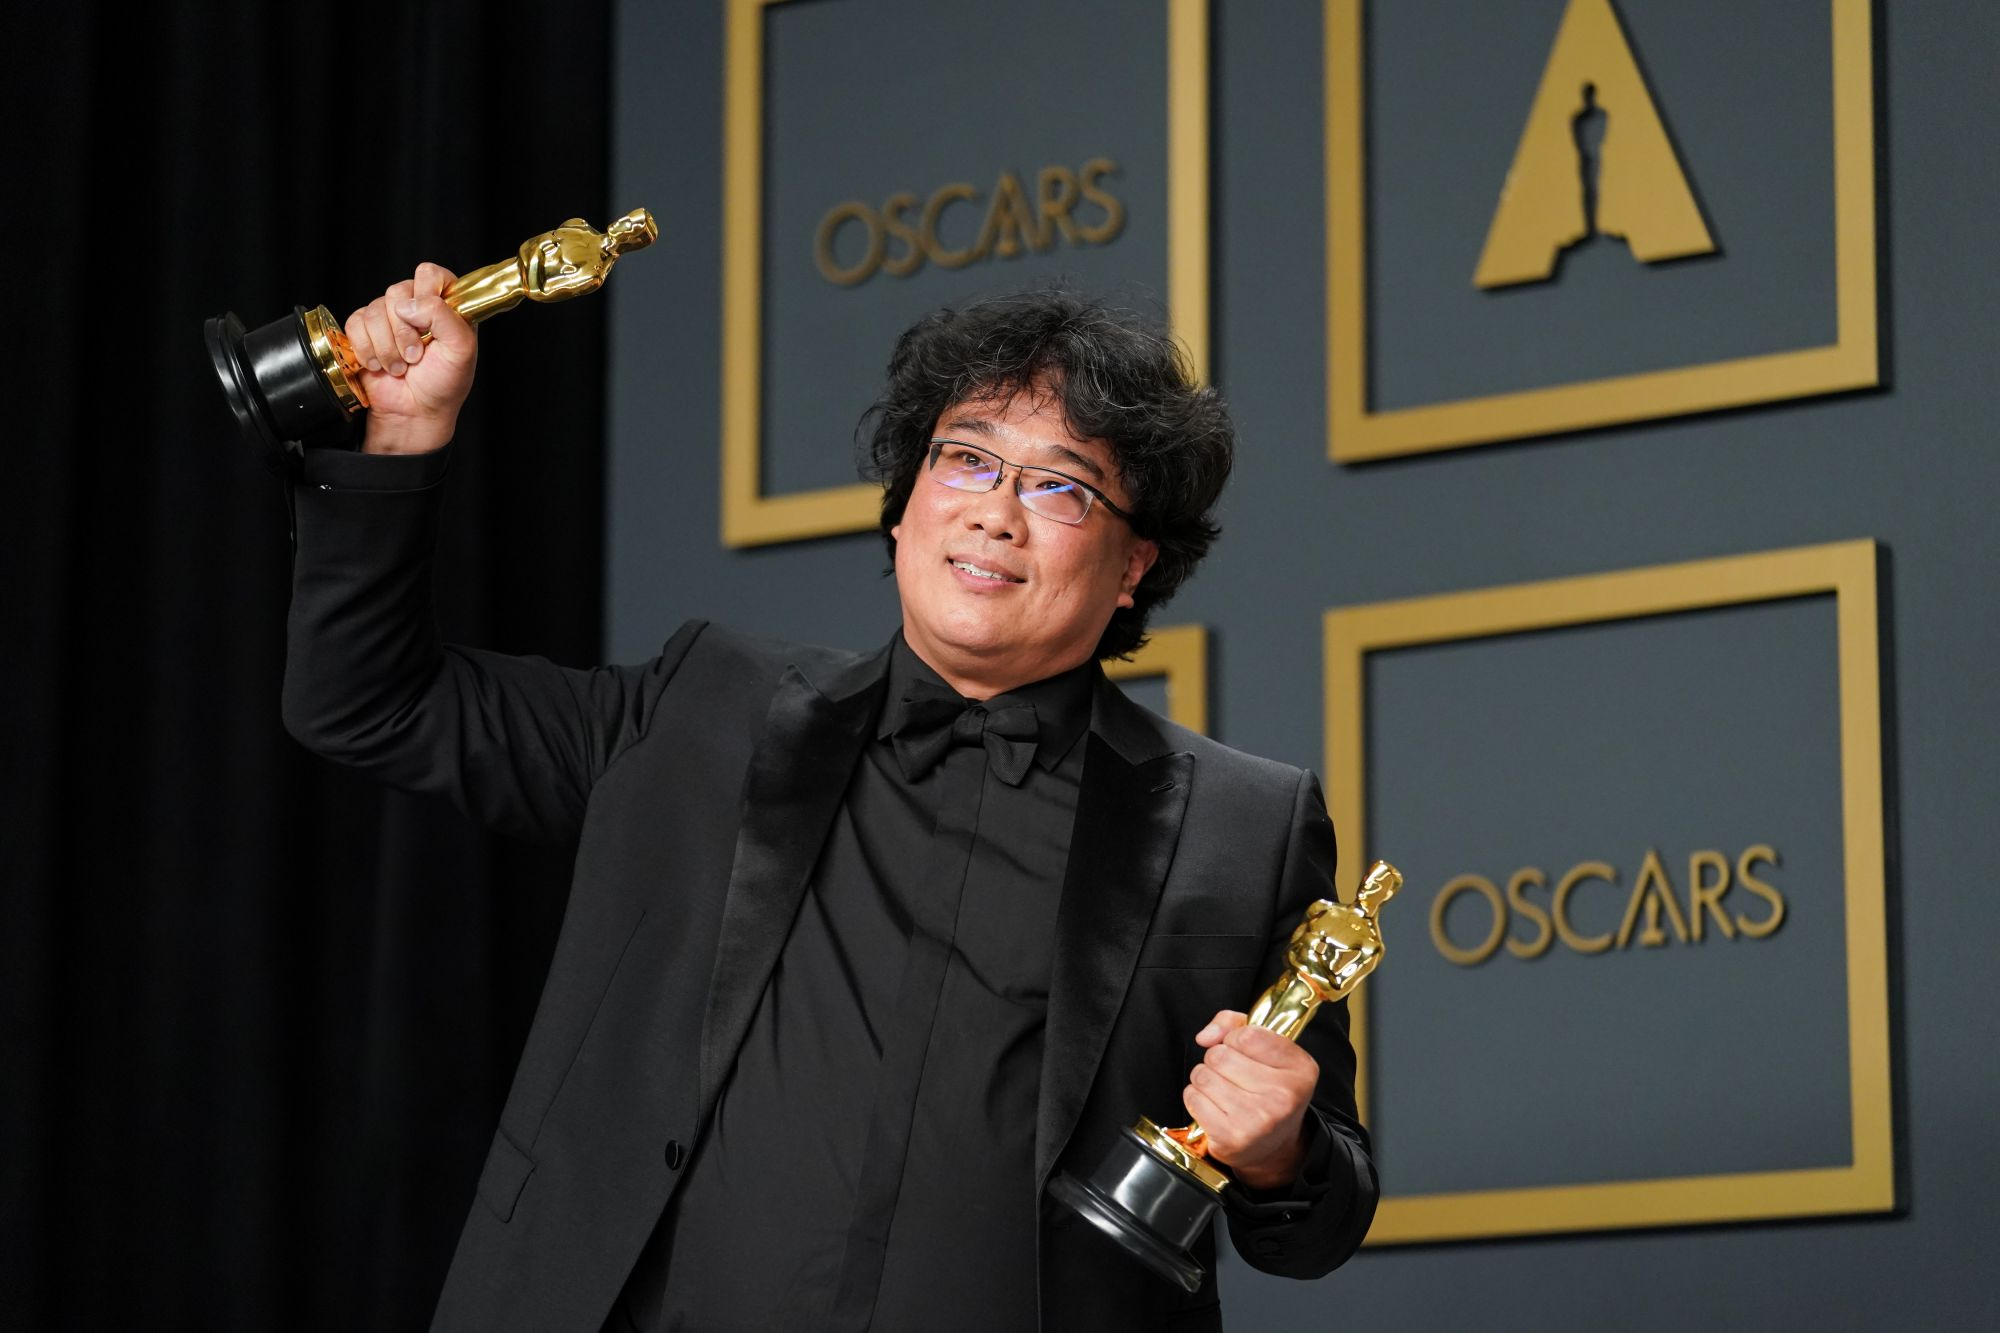 """HOLLYWOOD, CALIFORNIA - FEBRUARY 09: Bong Joon-ho, winner of the Original Screenplay, International Feature Film, Directing, and Best Picture award for """"Parasite,"""" poses in the press room during the 92nd Annual Academy Awards at Hollywood and Highland on February 09, 2020 in Hollywood, California. (Photo by Rachel Luna/Getty Images)"""